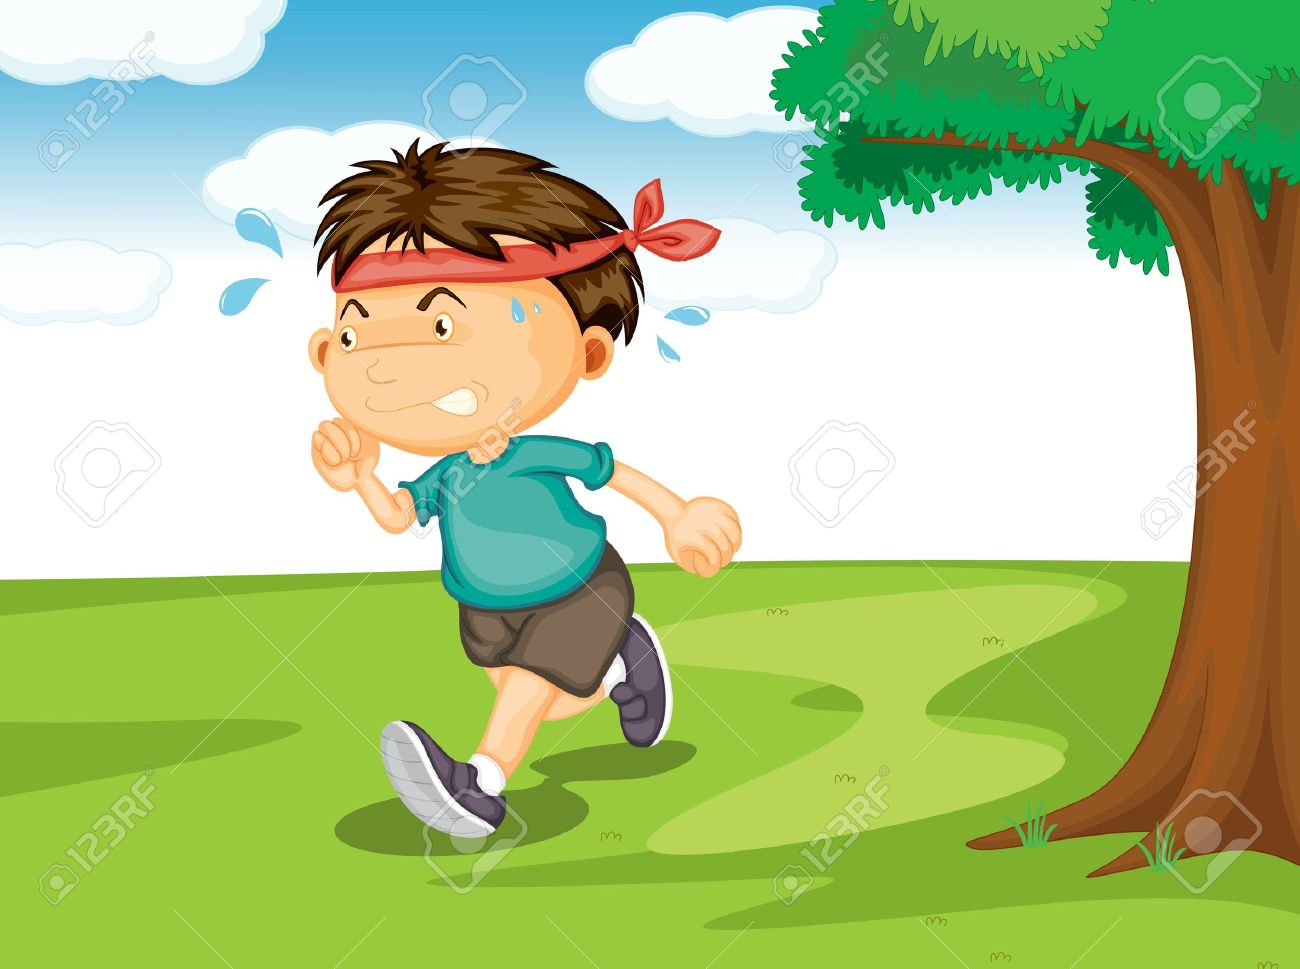 Illustration Of A Boy Running Outside In The Nature Royalty Free.